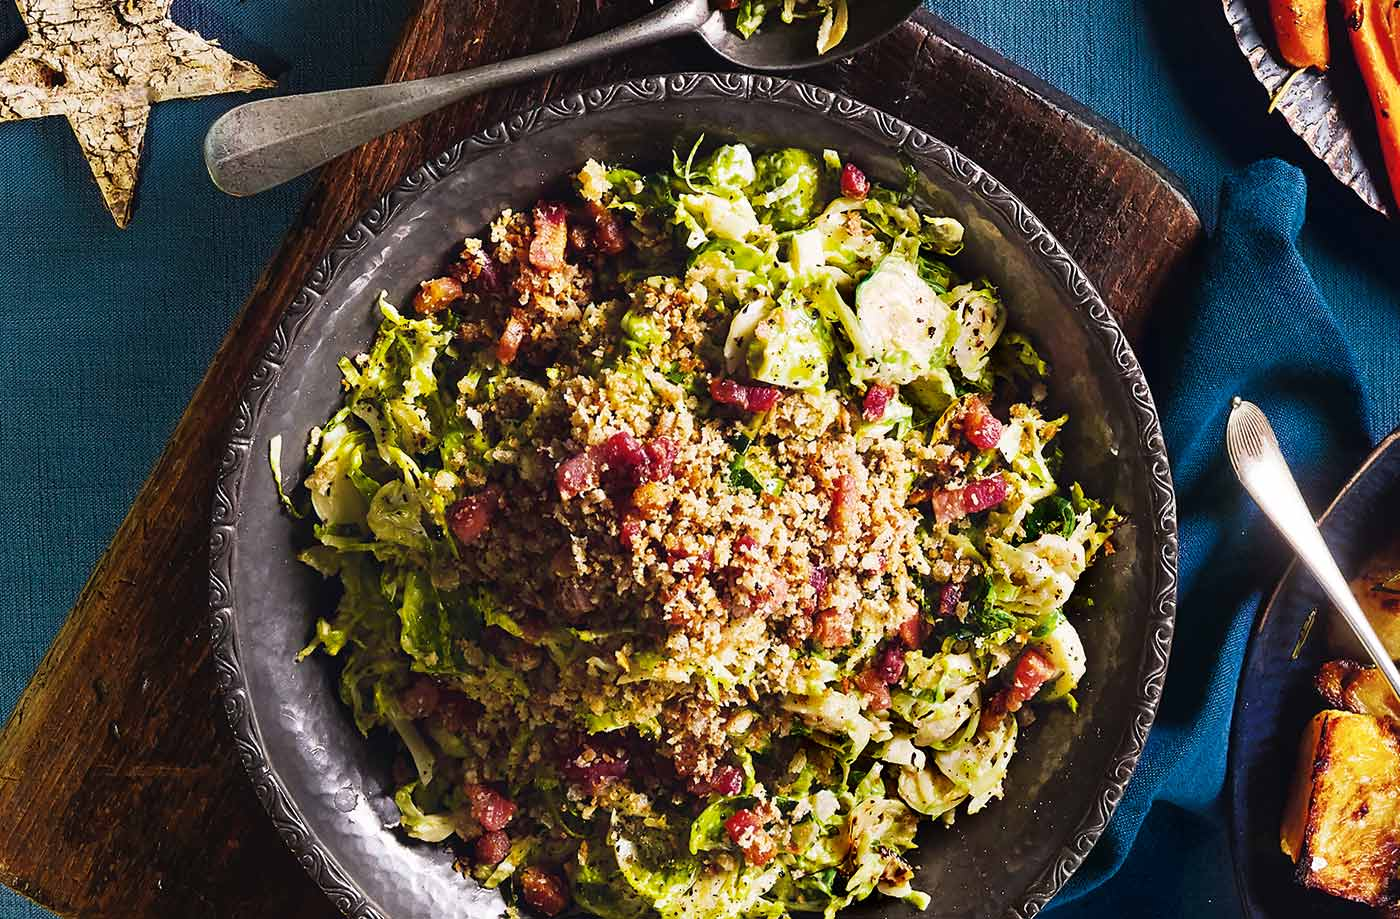 Creamed sprouts with pancetta crumb